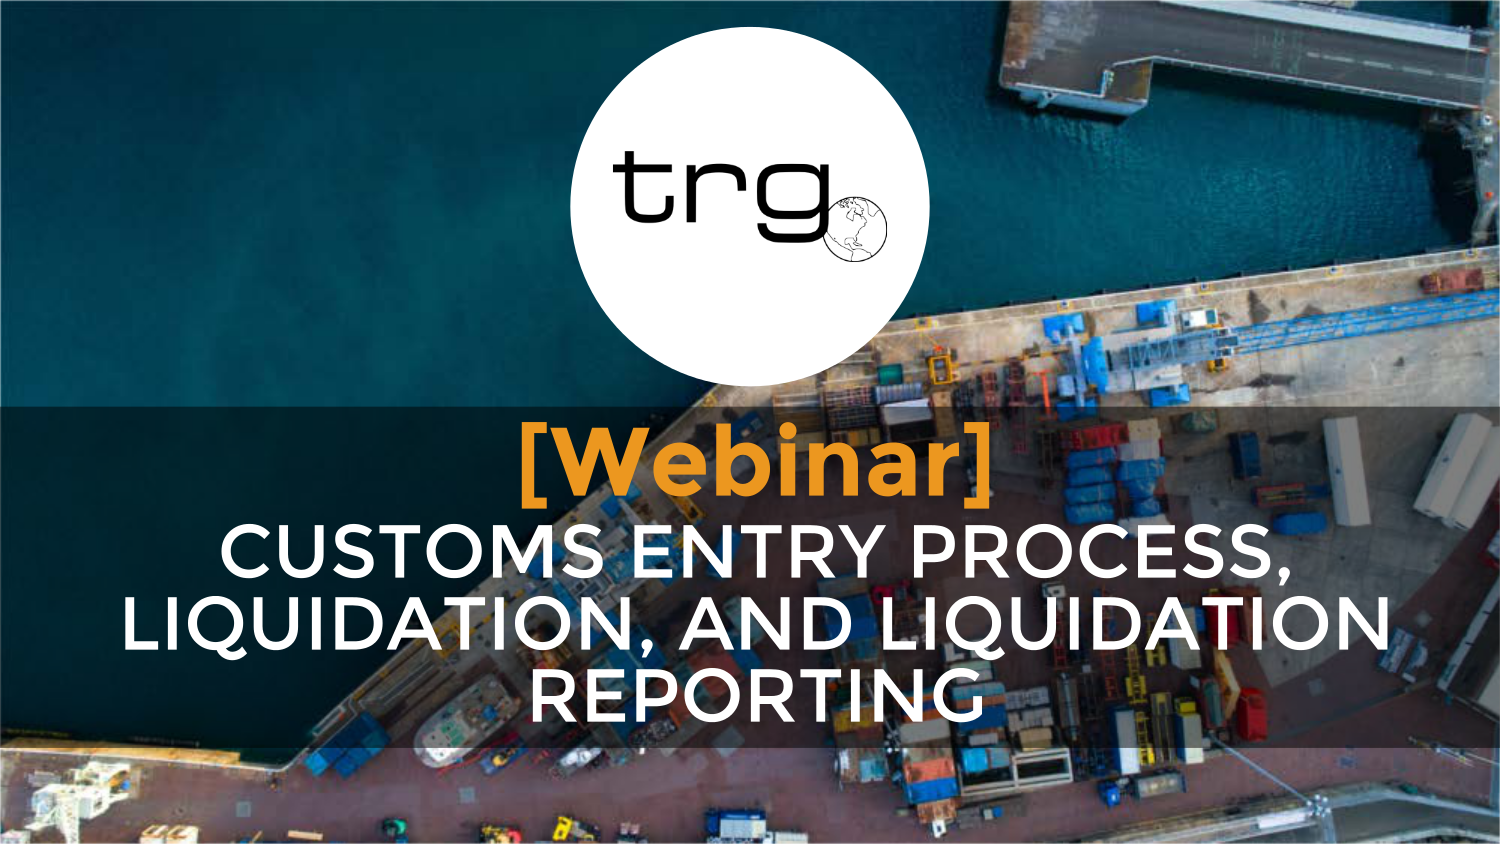 [Webinar] The Process of Liquidation and Entering Goods into the United States